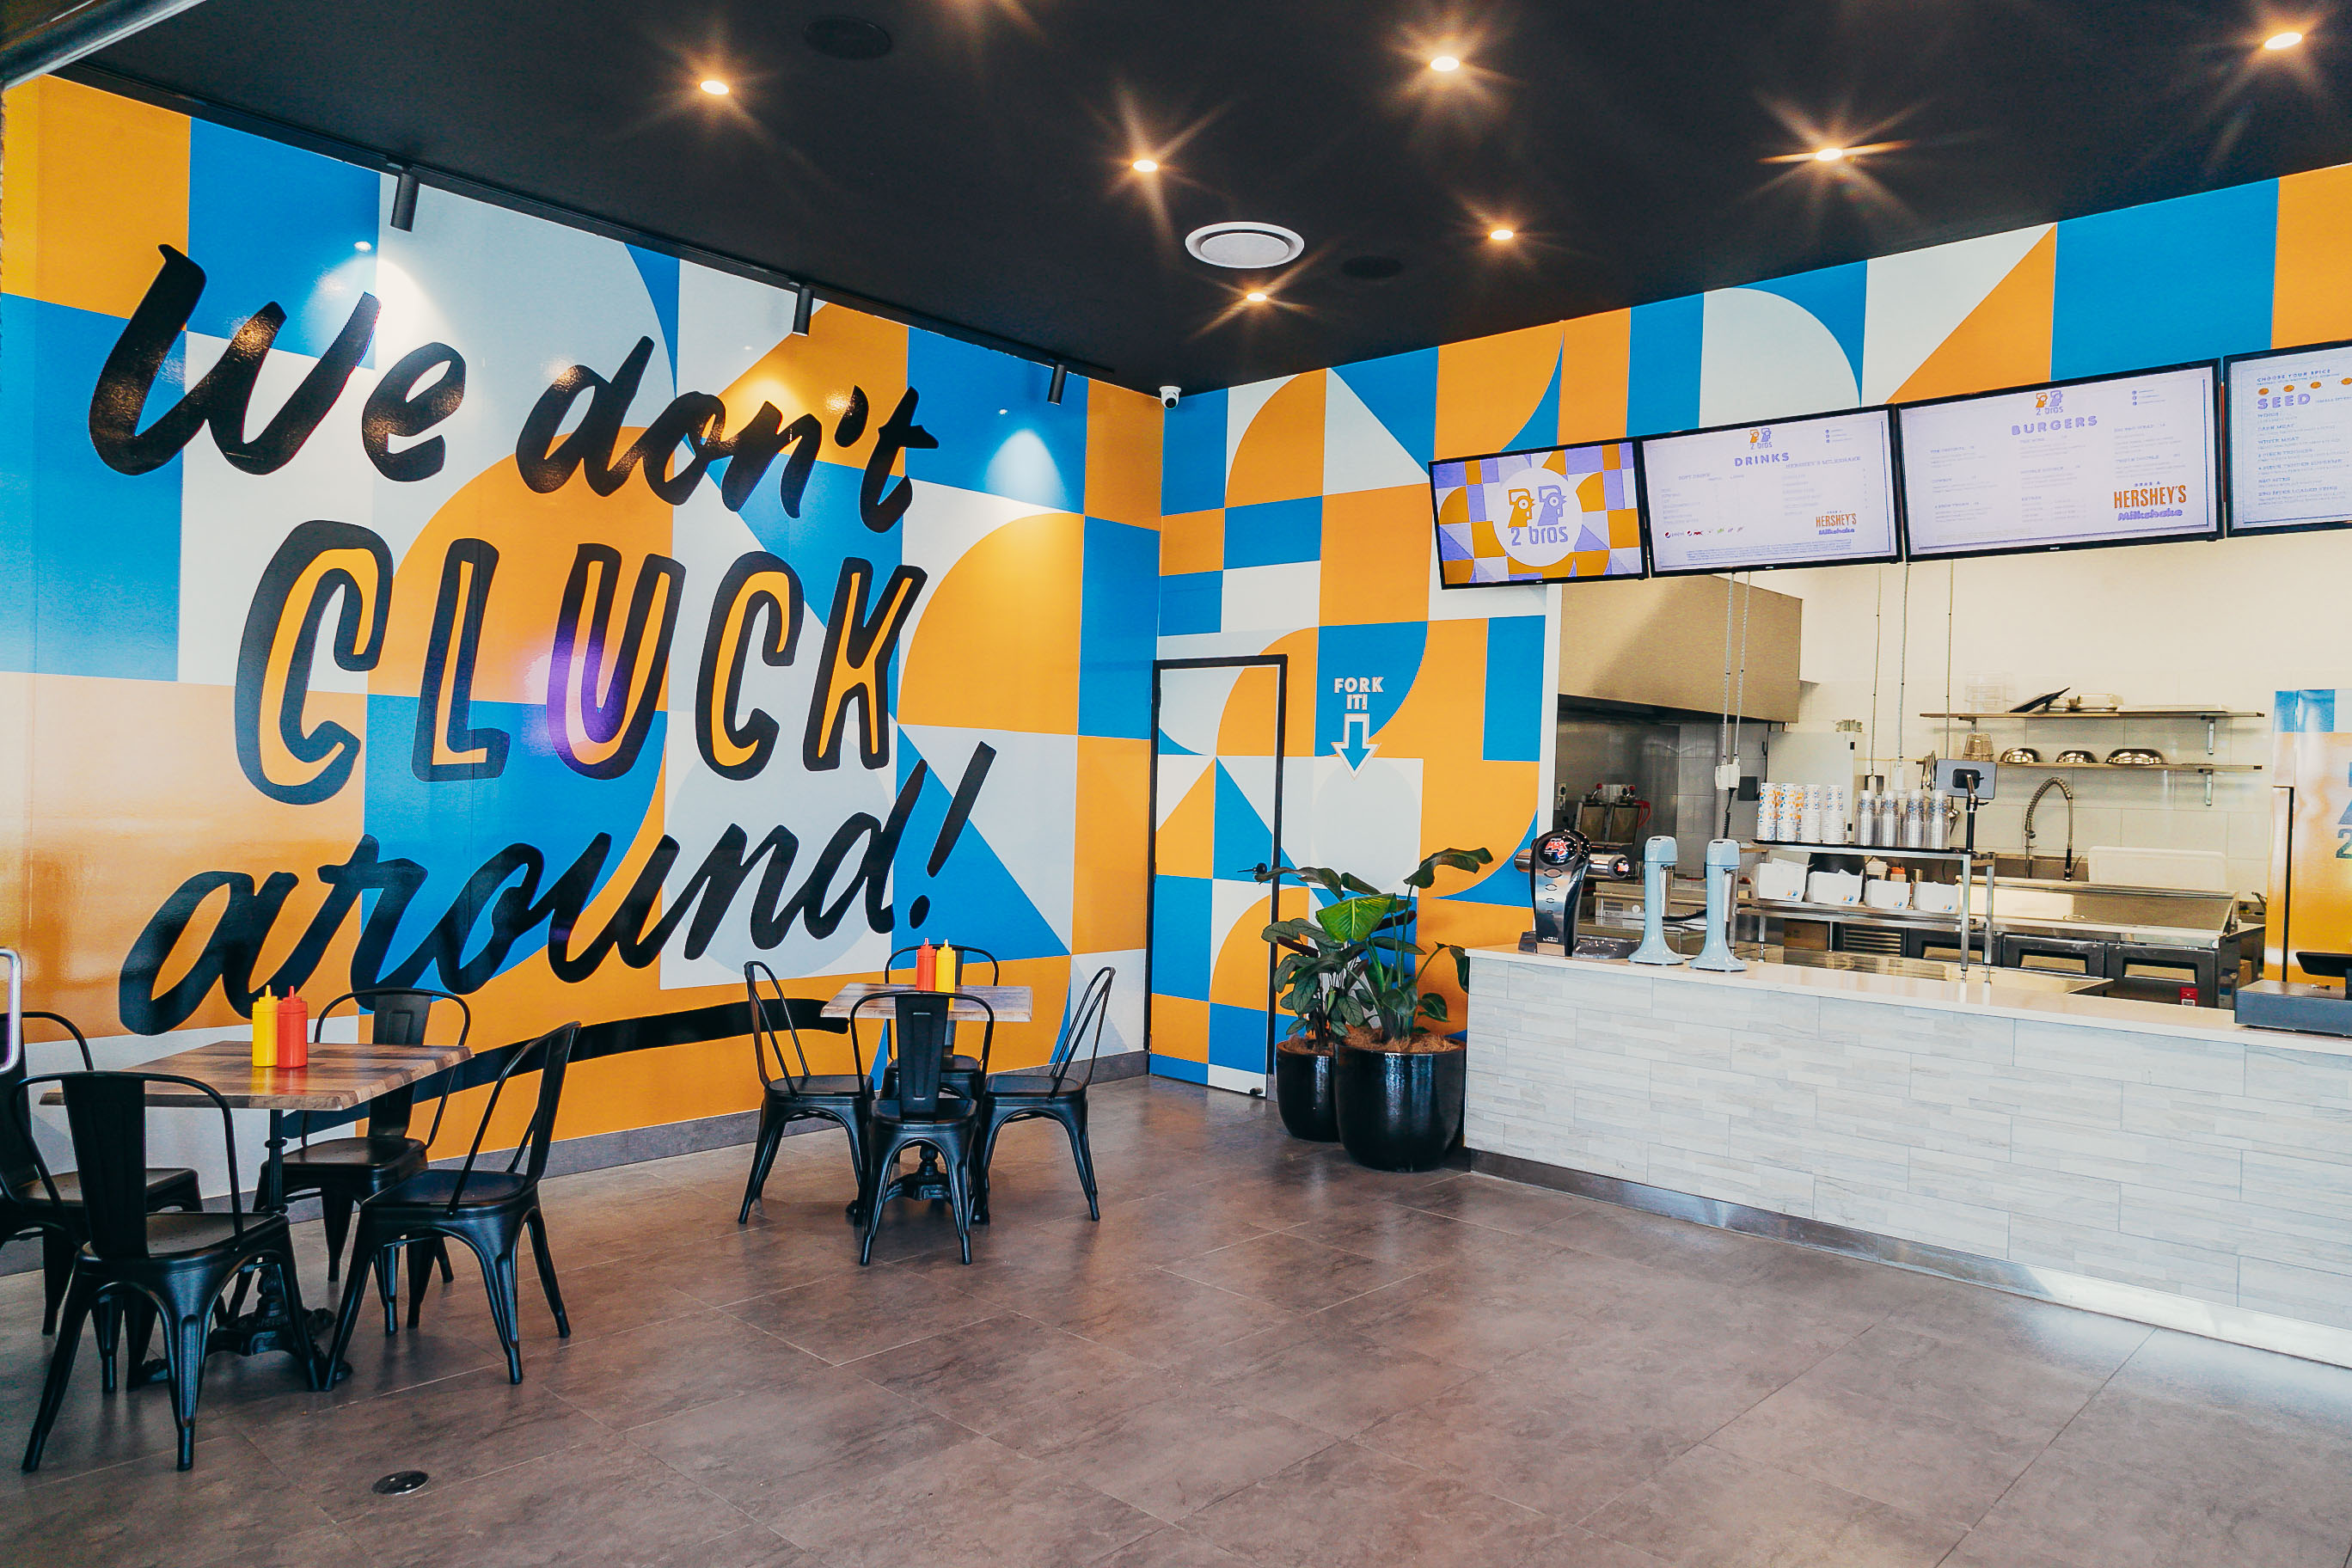 the interior of a fried chicken shop with yellow and blue accents